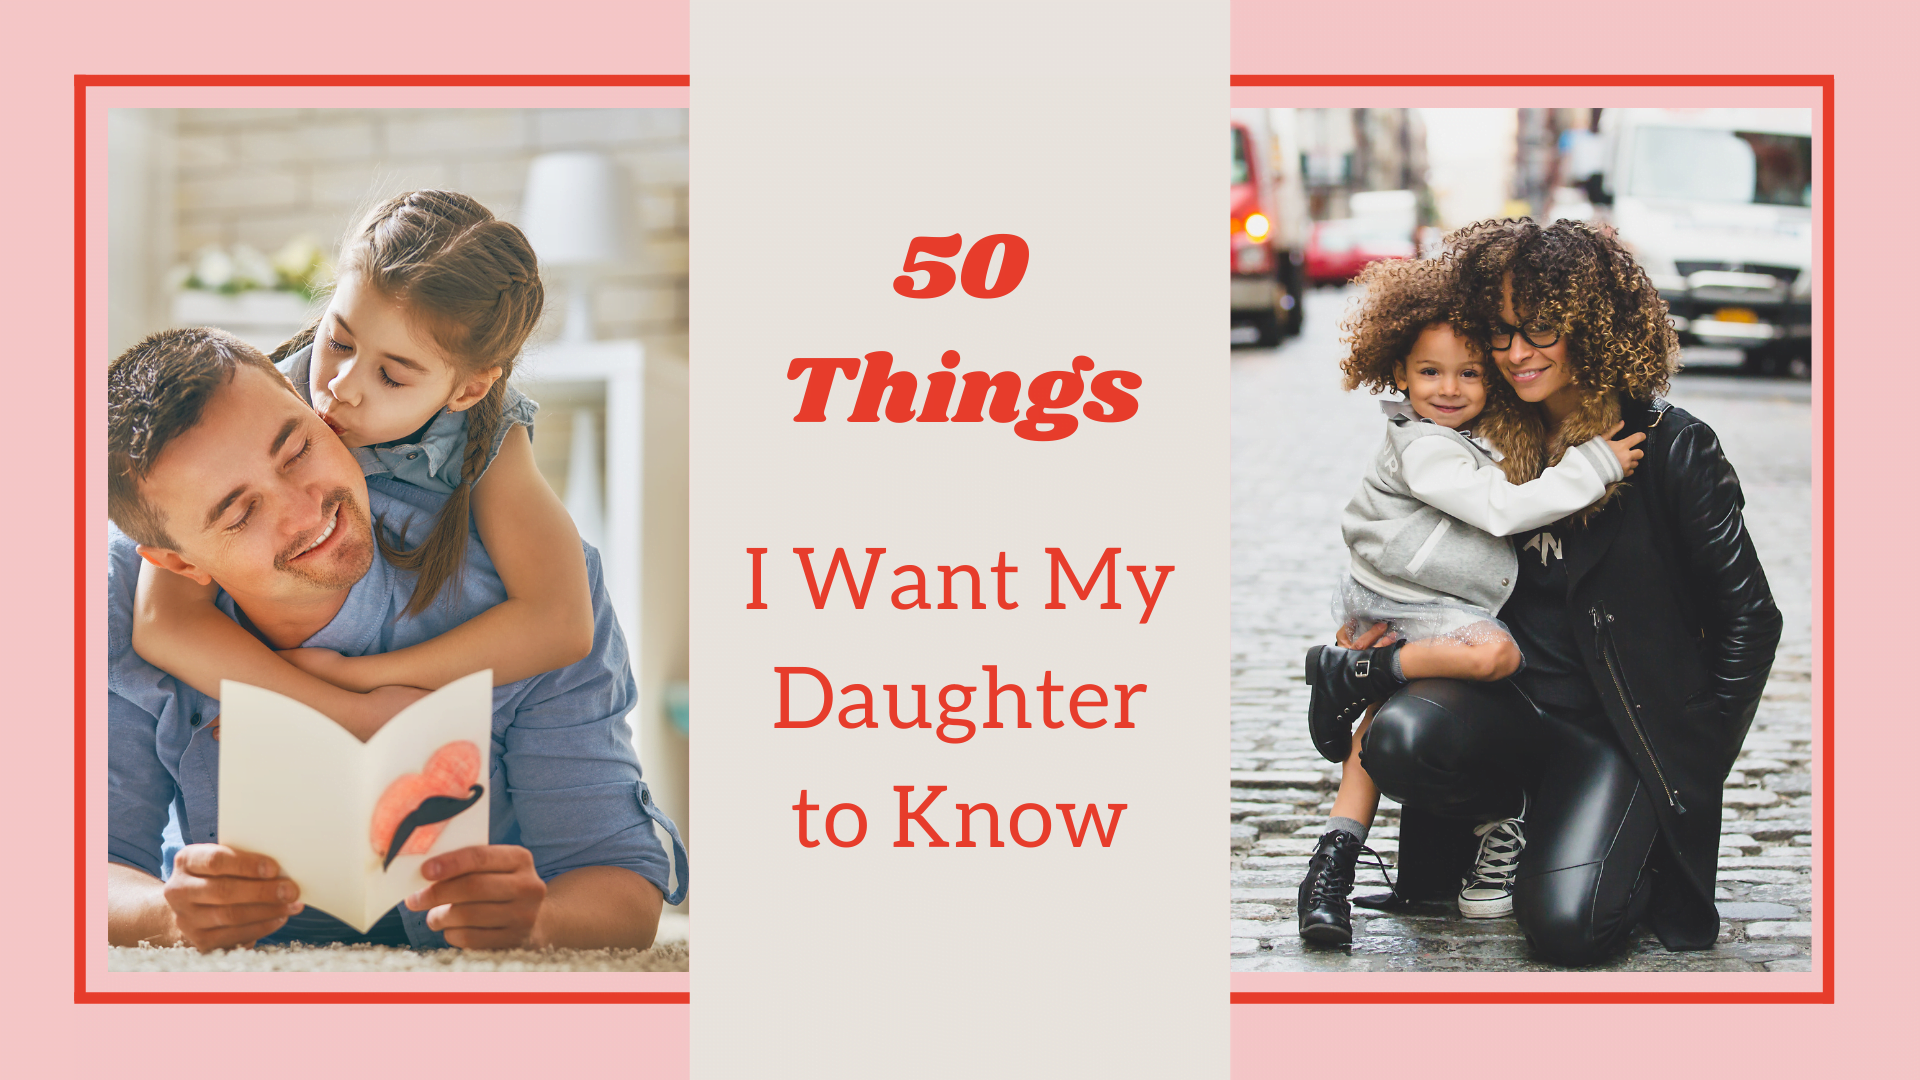 YT Thumb 50 Things I Want My Daughter to Know (1)